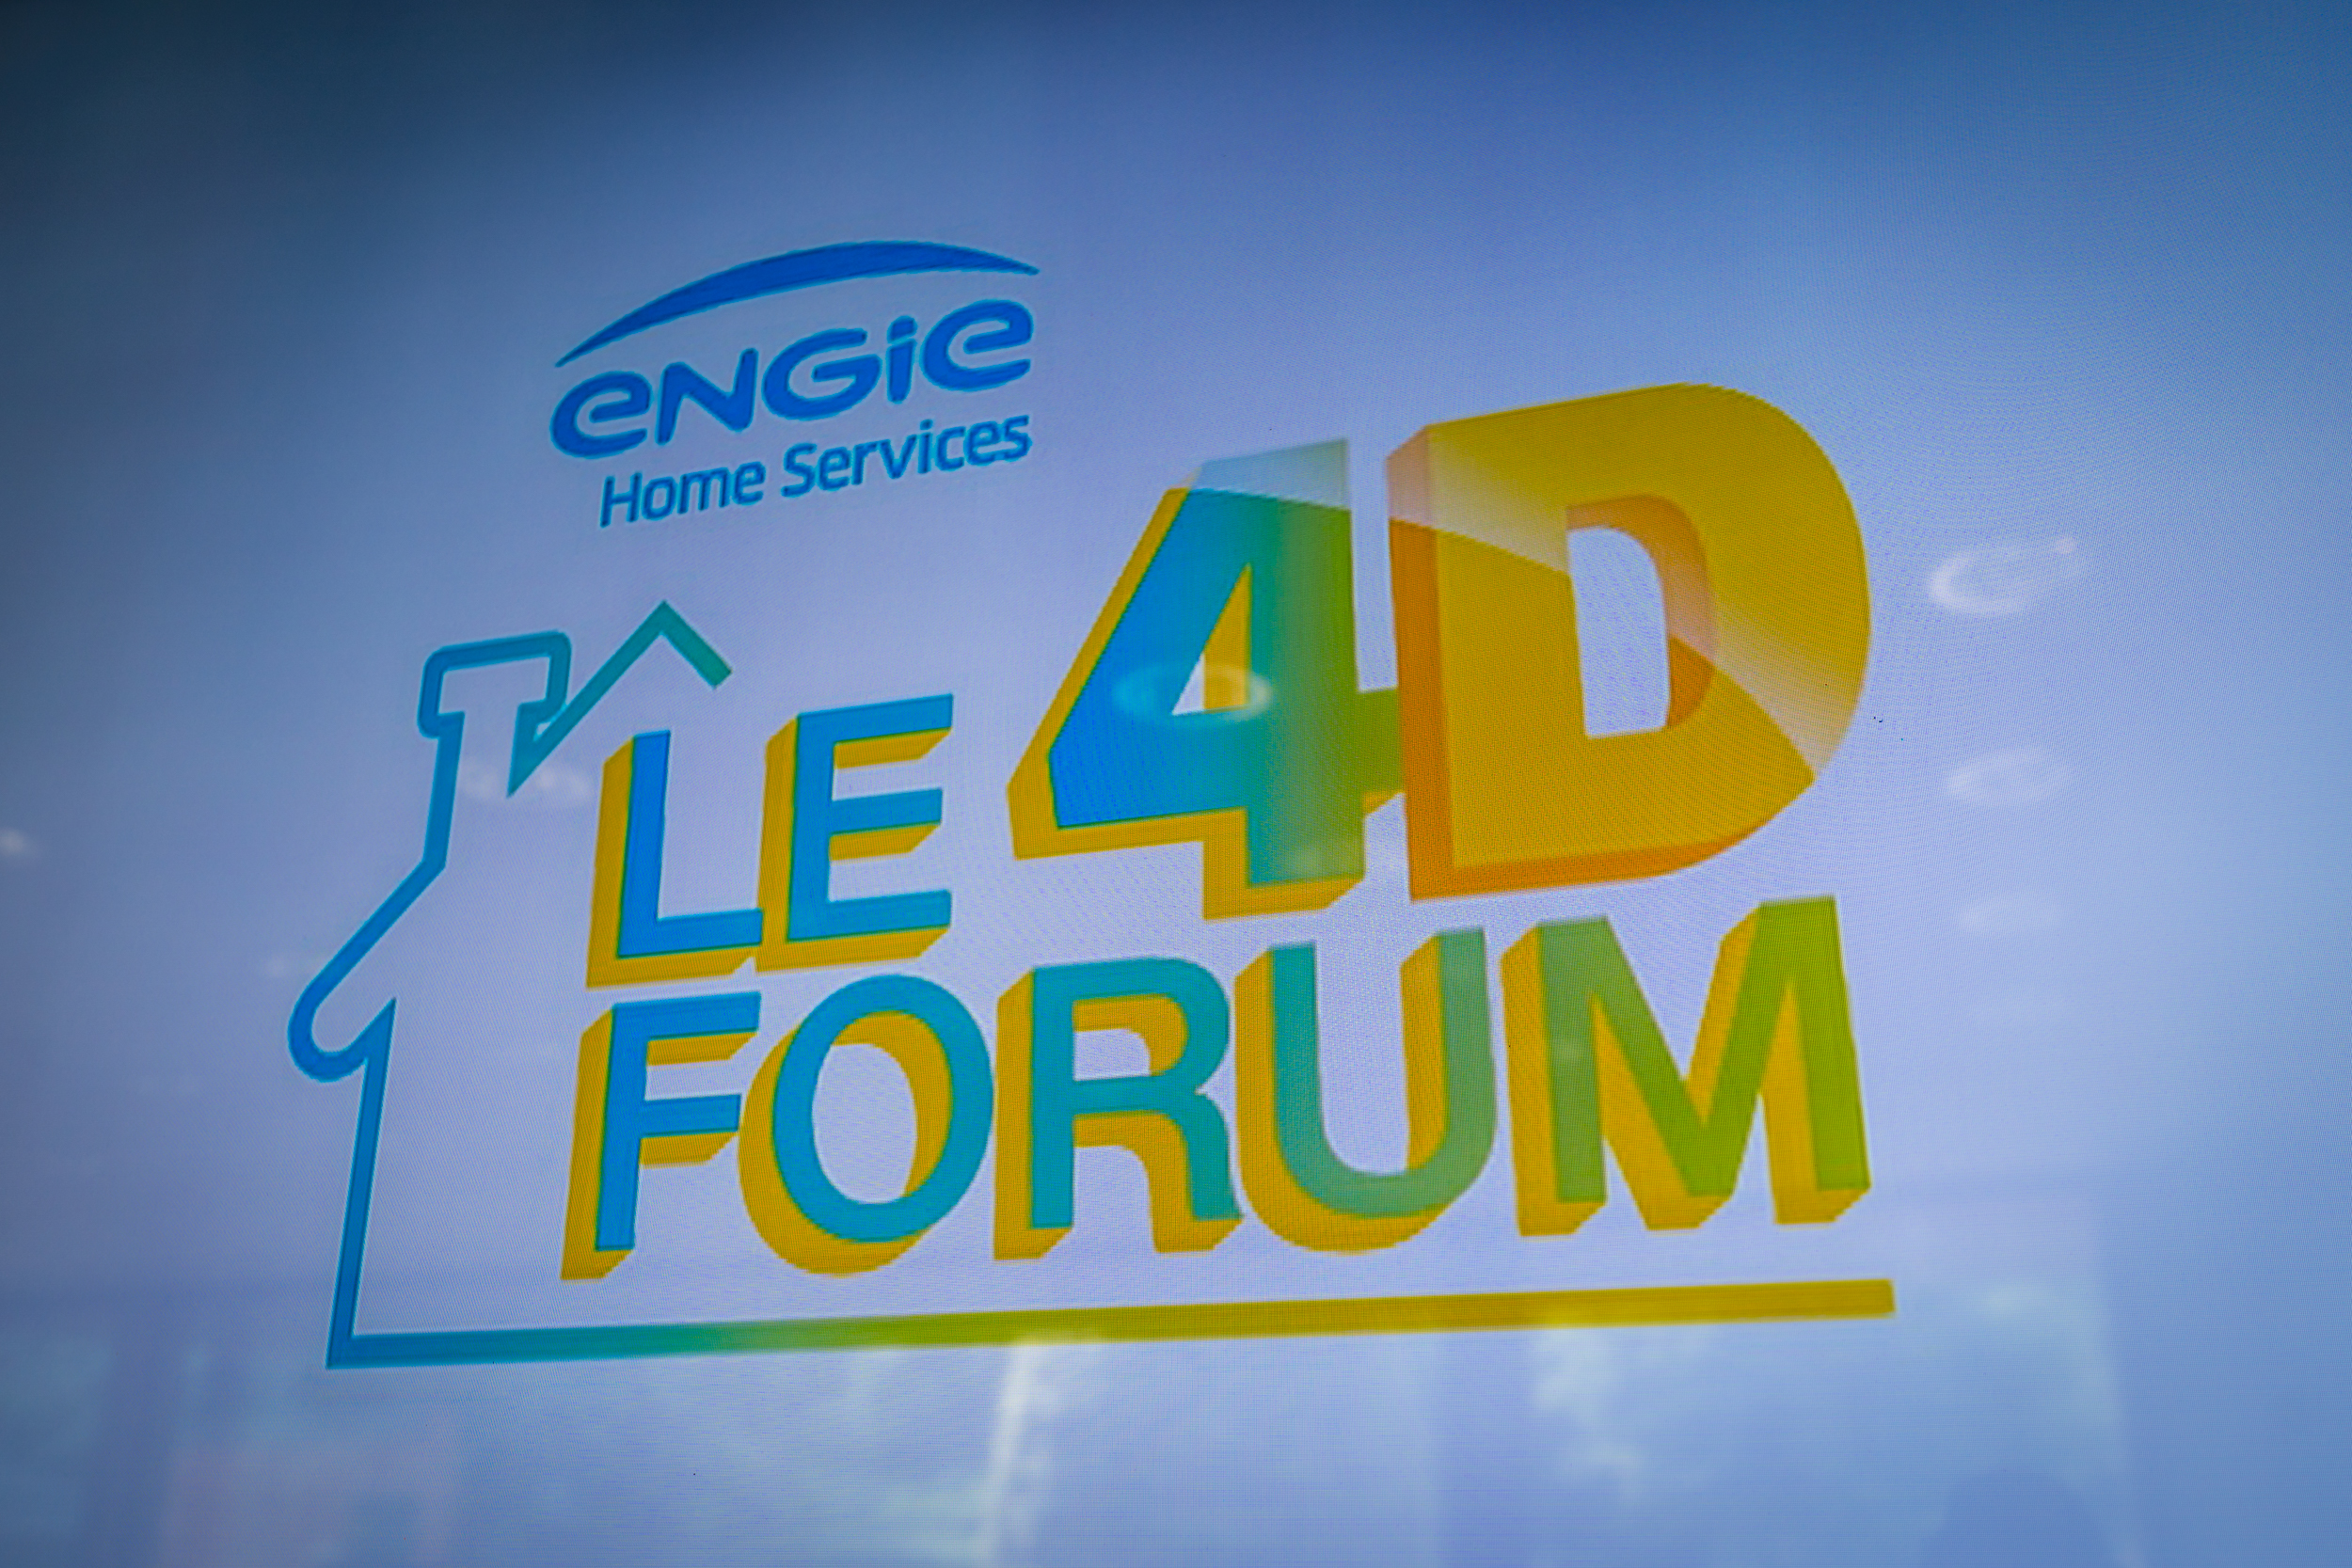 Engie Home Services Forum 4D 2018  © Florian Léger-33.jpg